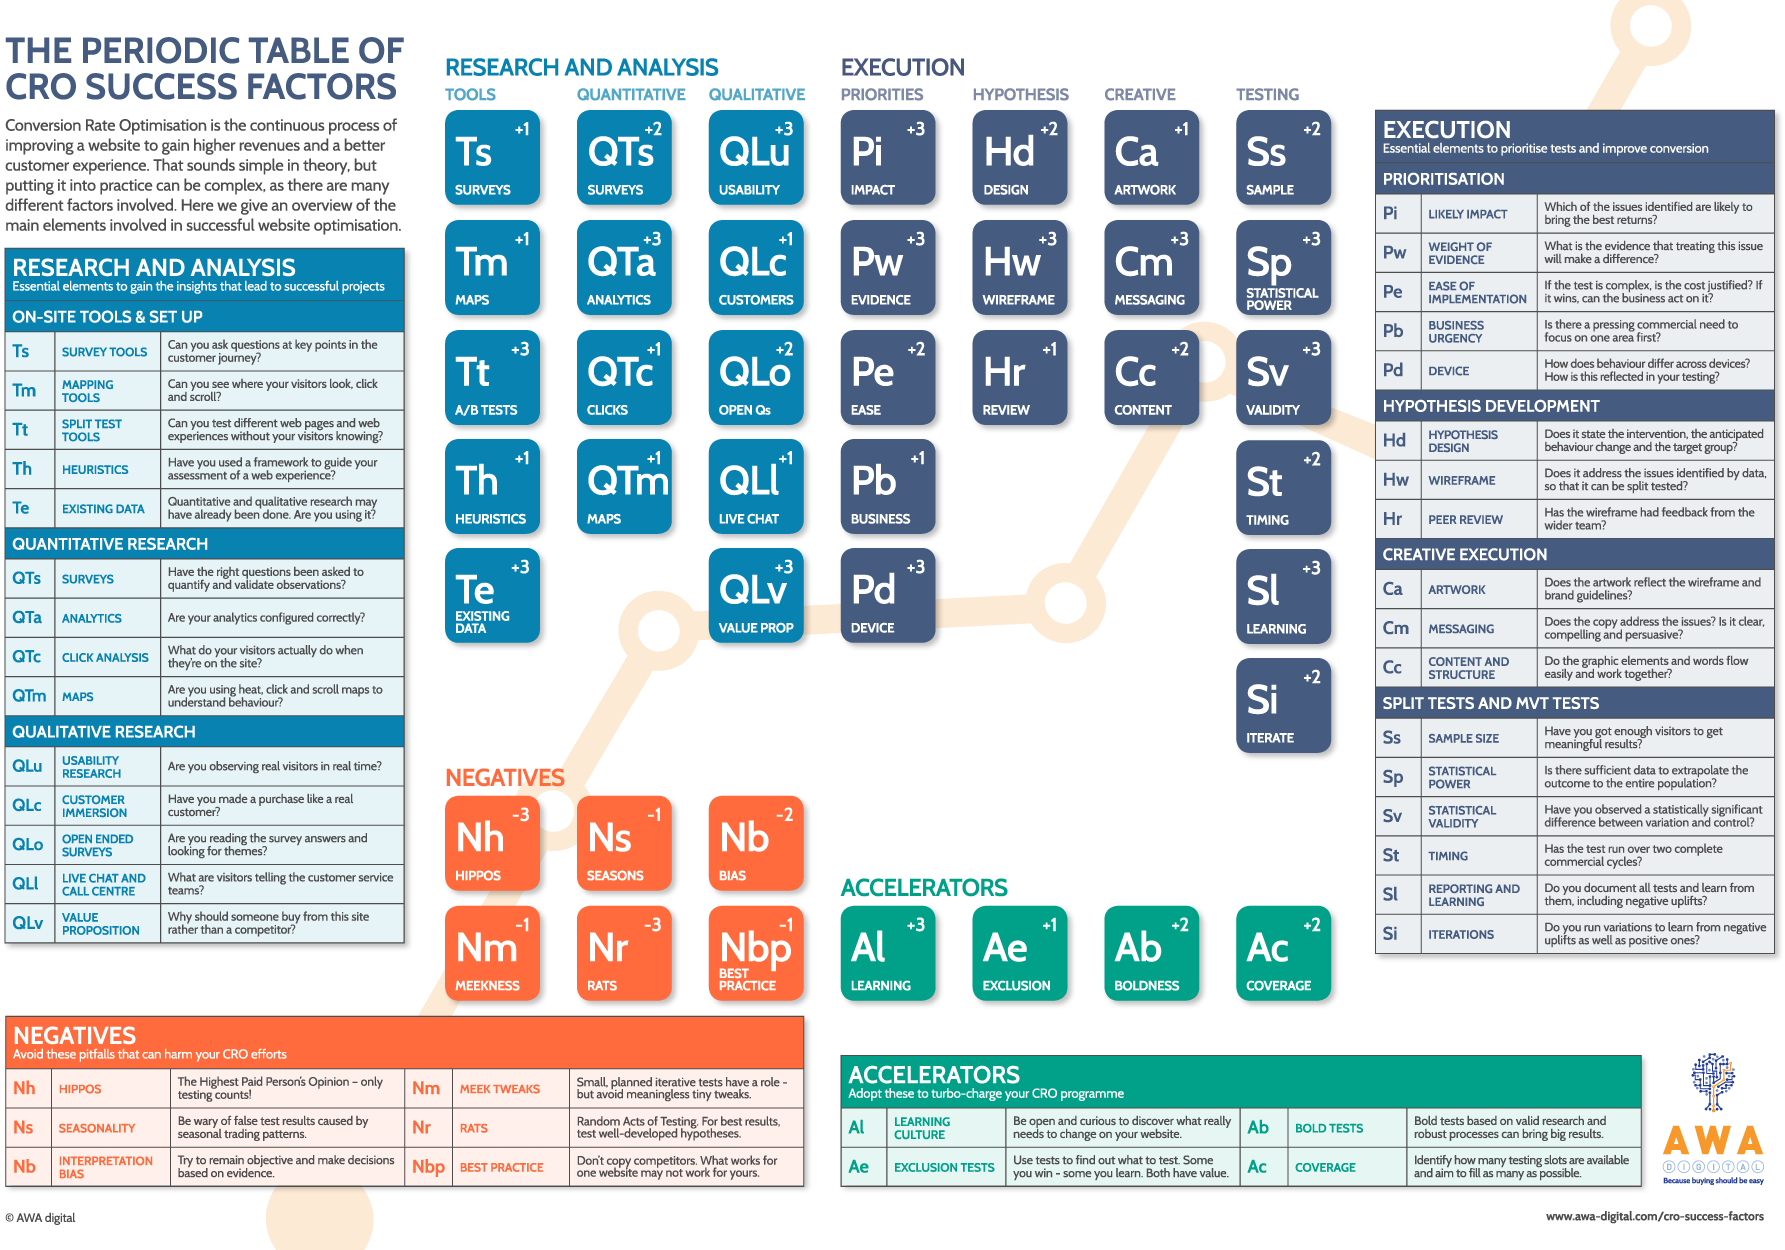 Periodic_Table_CRO_Success_Factors-2.png